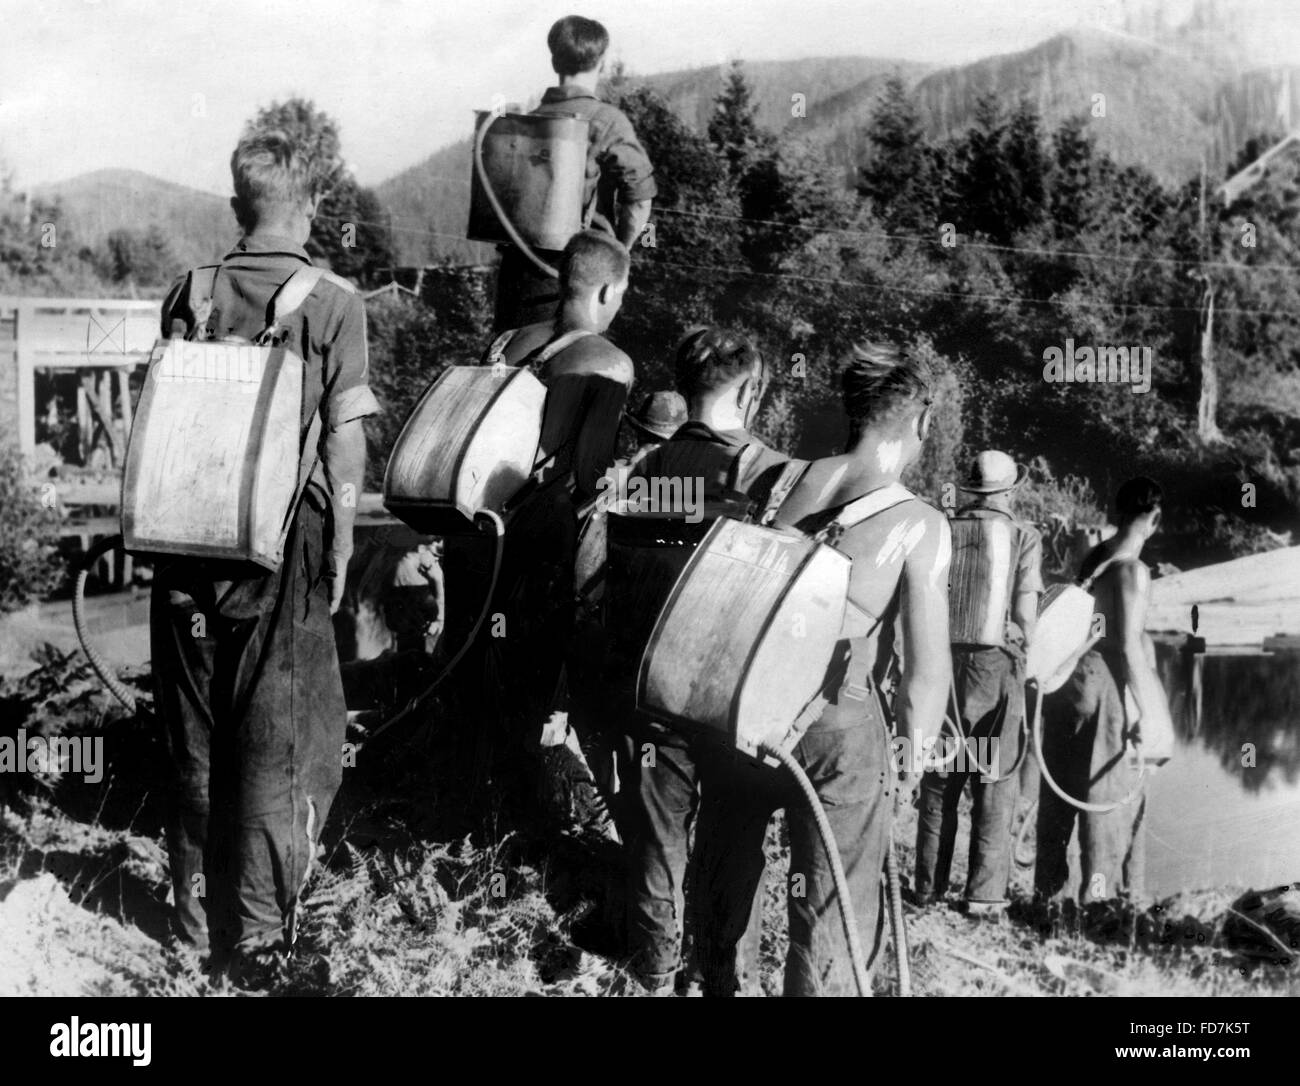 Civilian Conservation Corps: Roosevelt Forest Army, 1933 - Stock Image